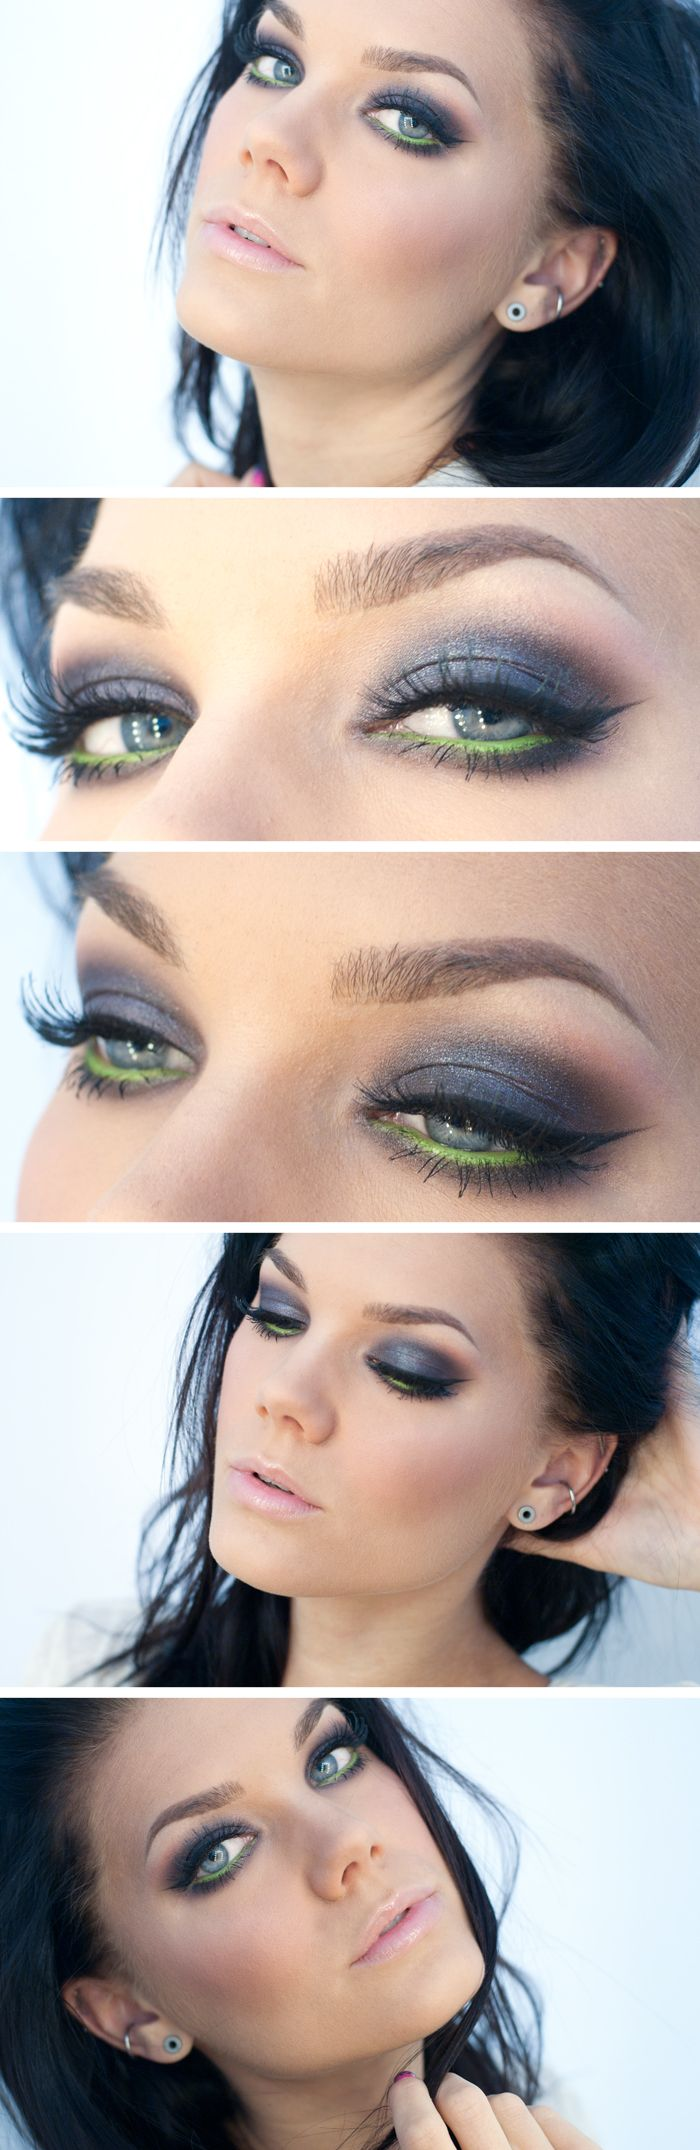 """Smokey eyes with a twist, use Younique mineral pigments in PRECOCOUS mixed with FIESTY on the lid and FAMOUS as your """"twist"""" color! Love this smokey eye for blue eyes! https://www.youniqueproducts.com/White"""